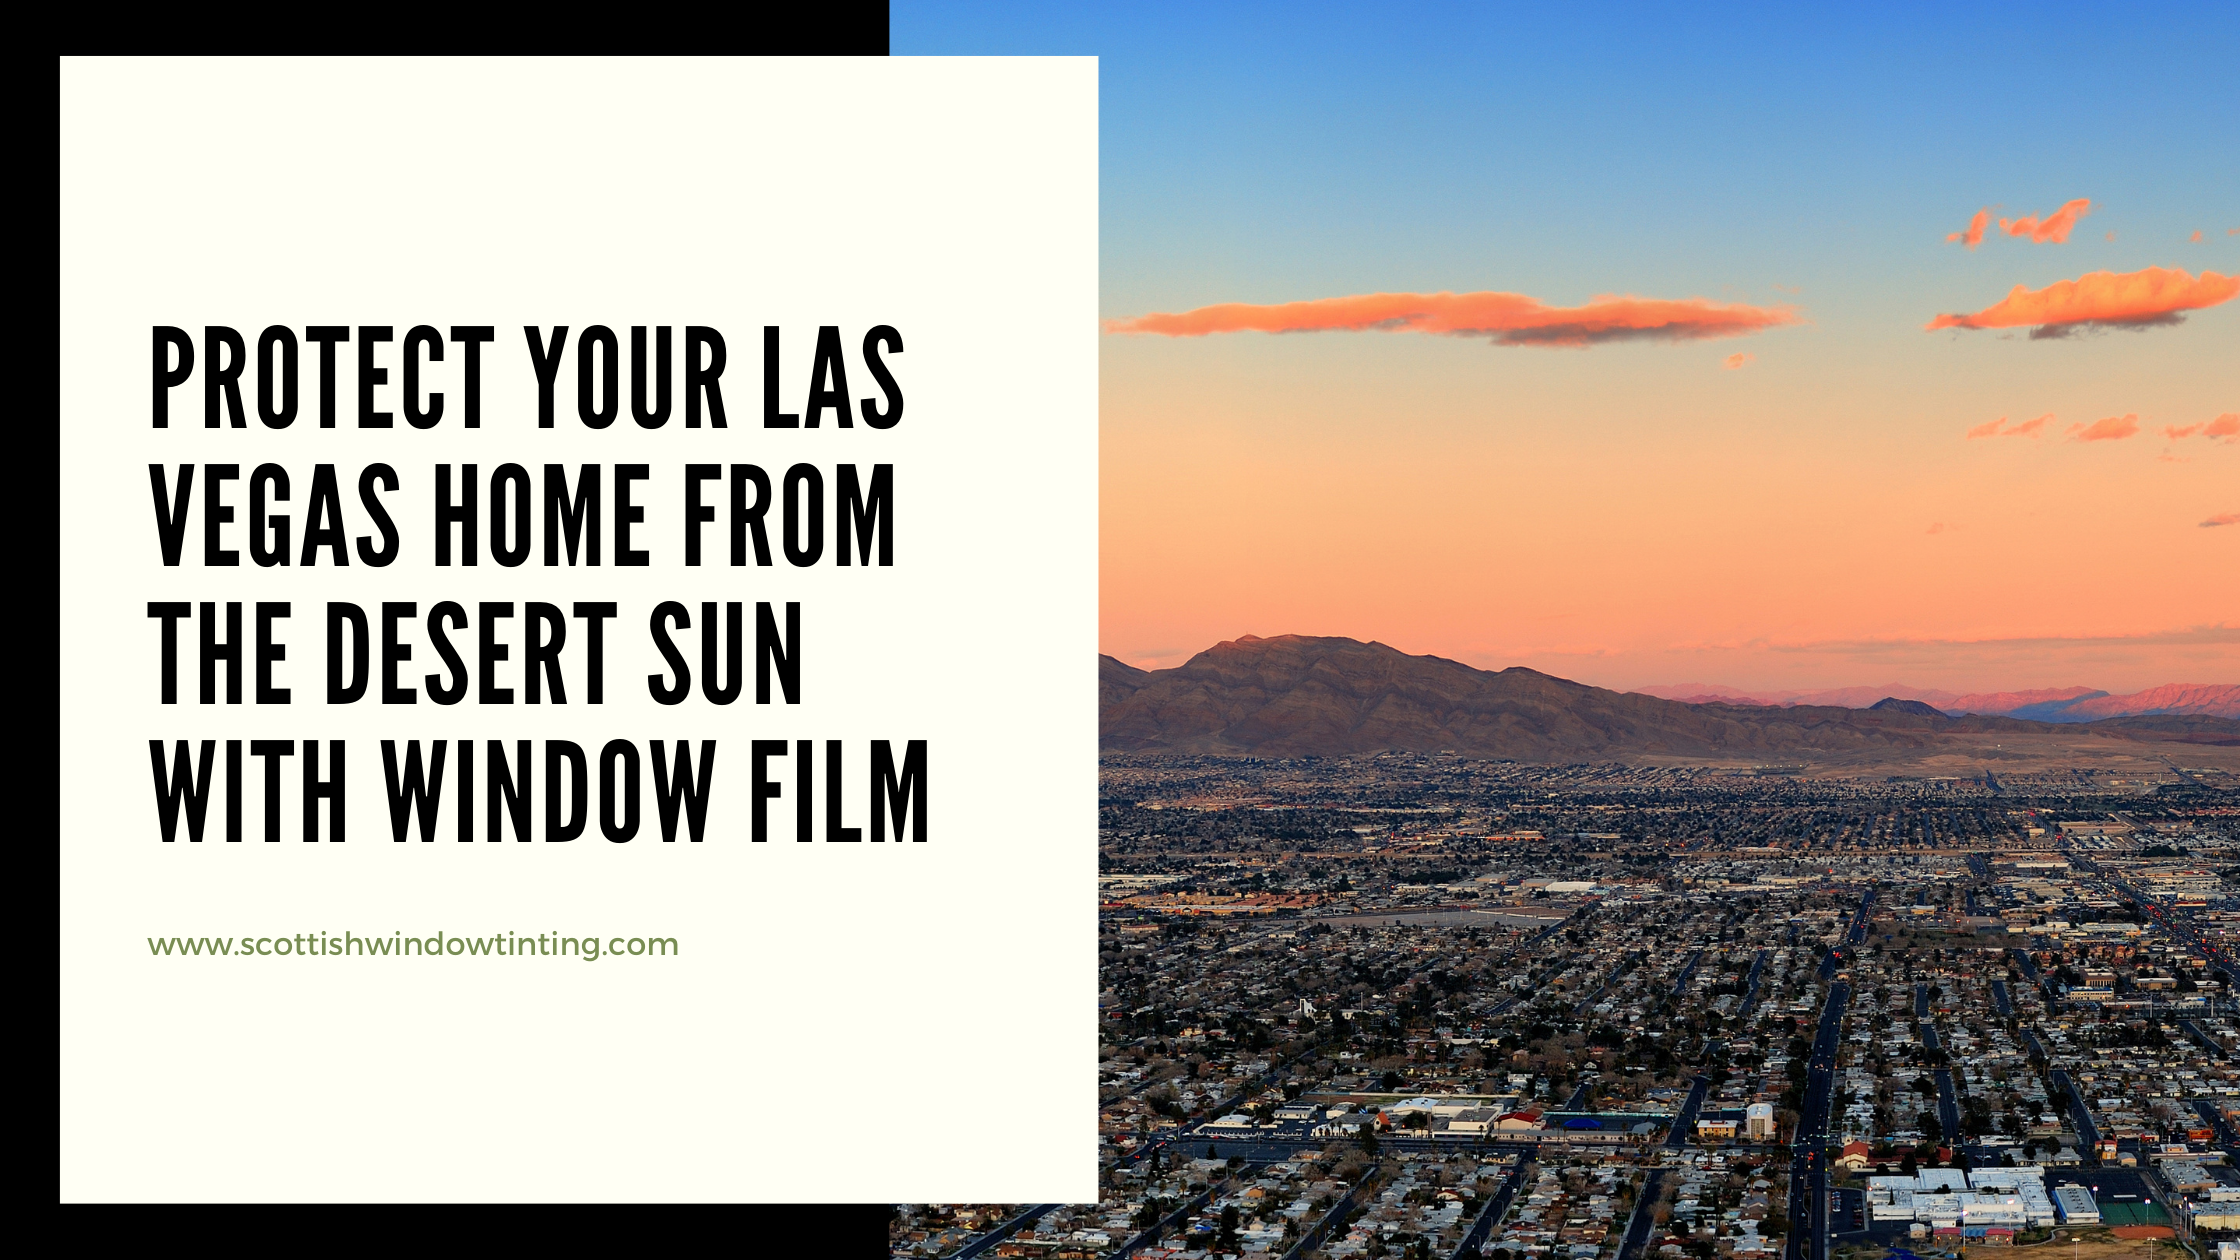 Protect Your Las Vegas Home from the Desert Sun with Window Film